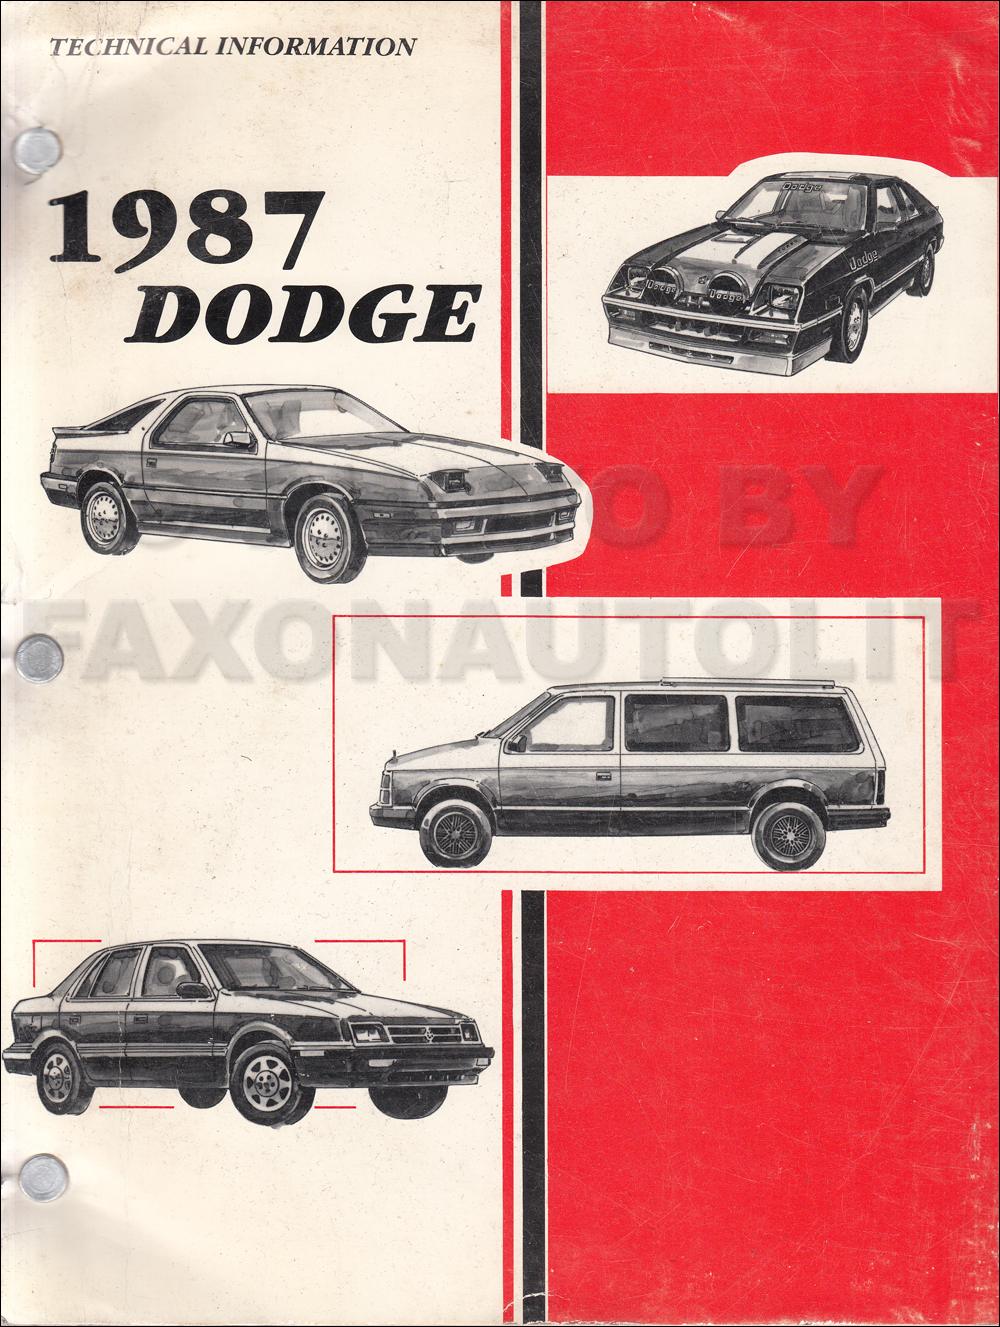 1987 Dodge Car Technical Press Information Original